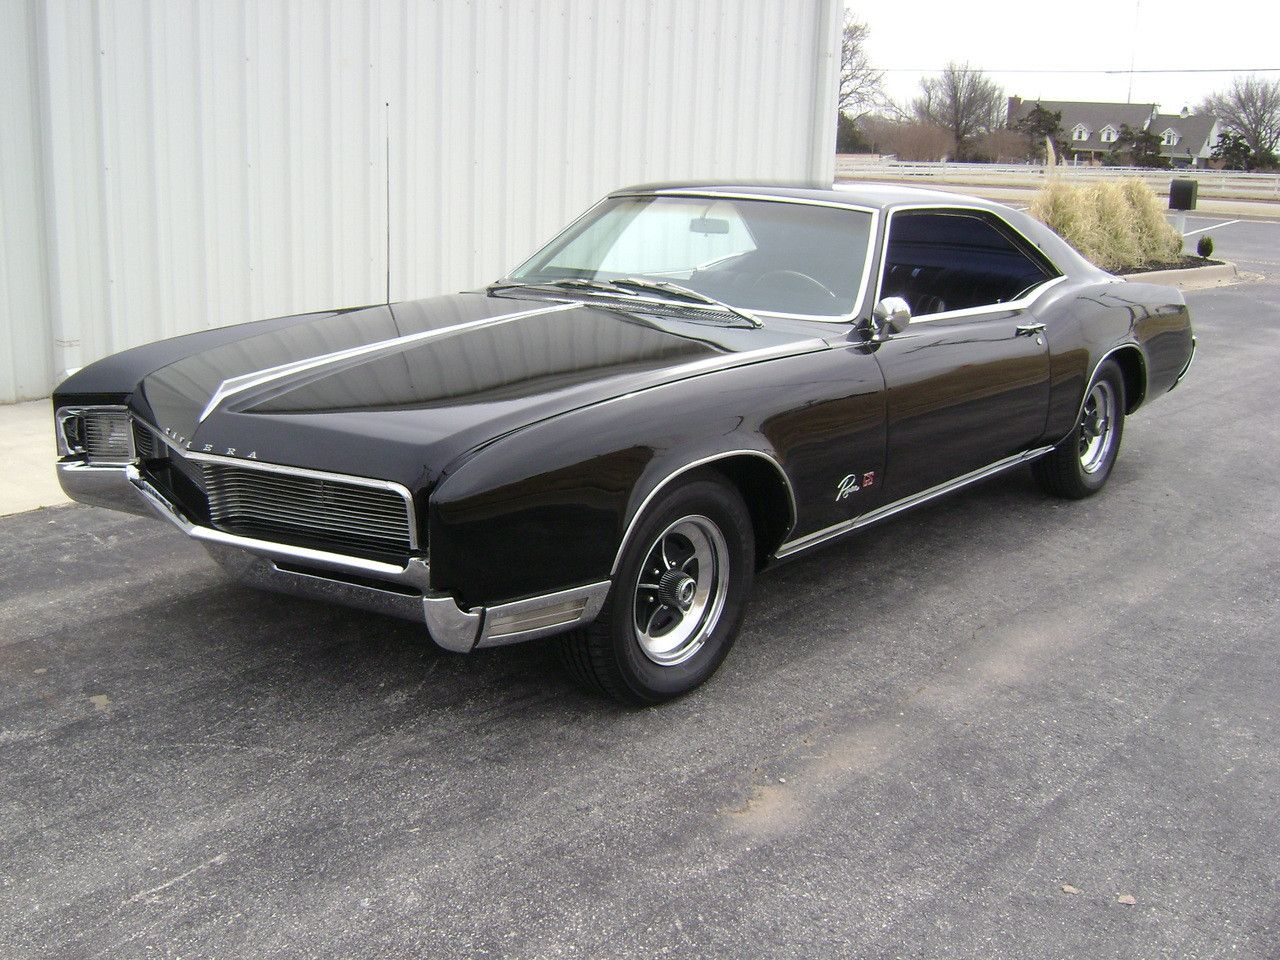 1966 Buick Riviera (With images) Buick riviera, Dream